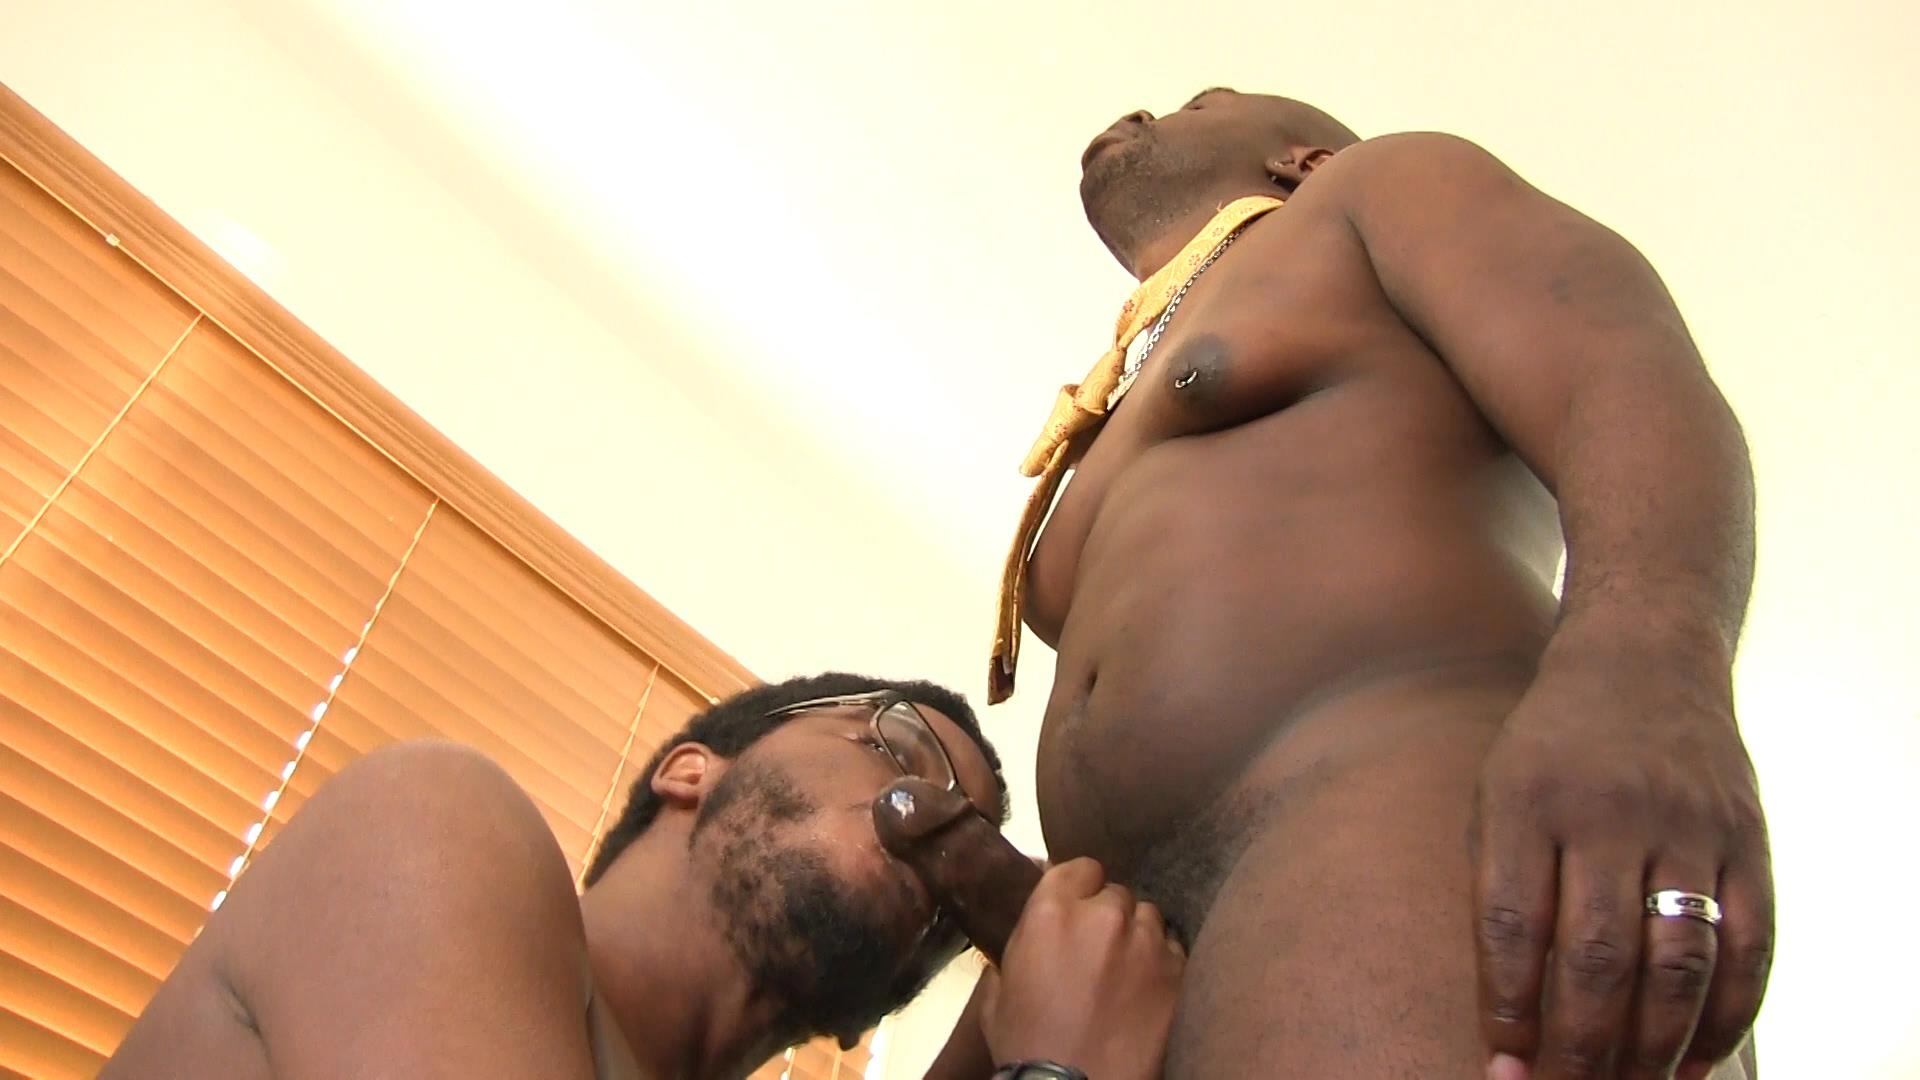 Bareback Me Daddy Daemon Sadi and Donny Ray Black Daddy Fucking A Twink Bareback Amateur Gay Porn 08 Black Daddy Barebacks His Black Twink With His Big Black Dick